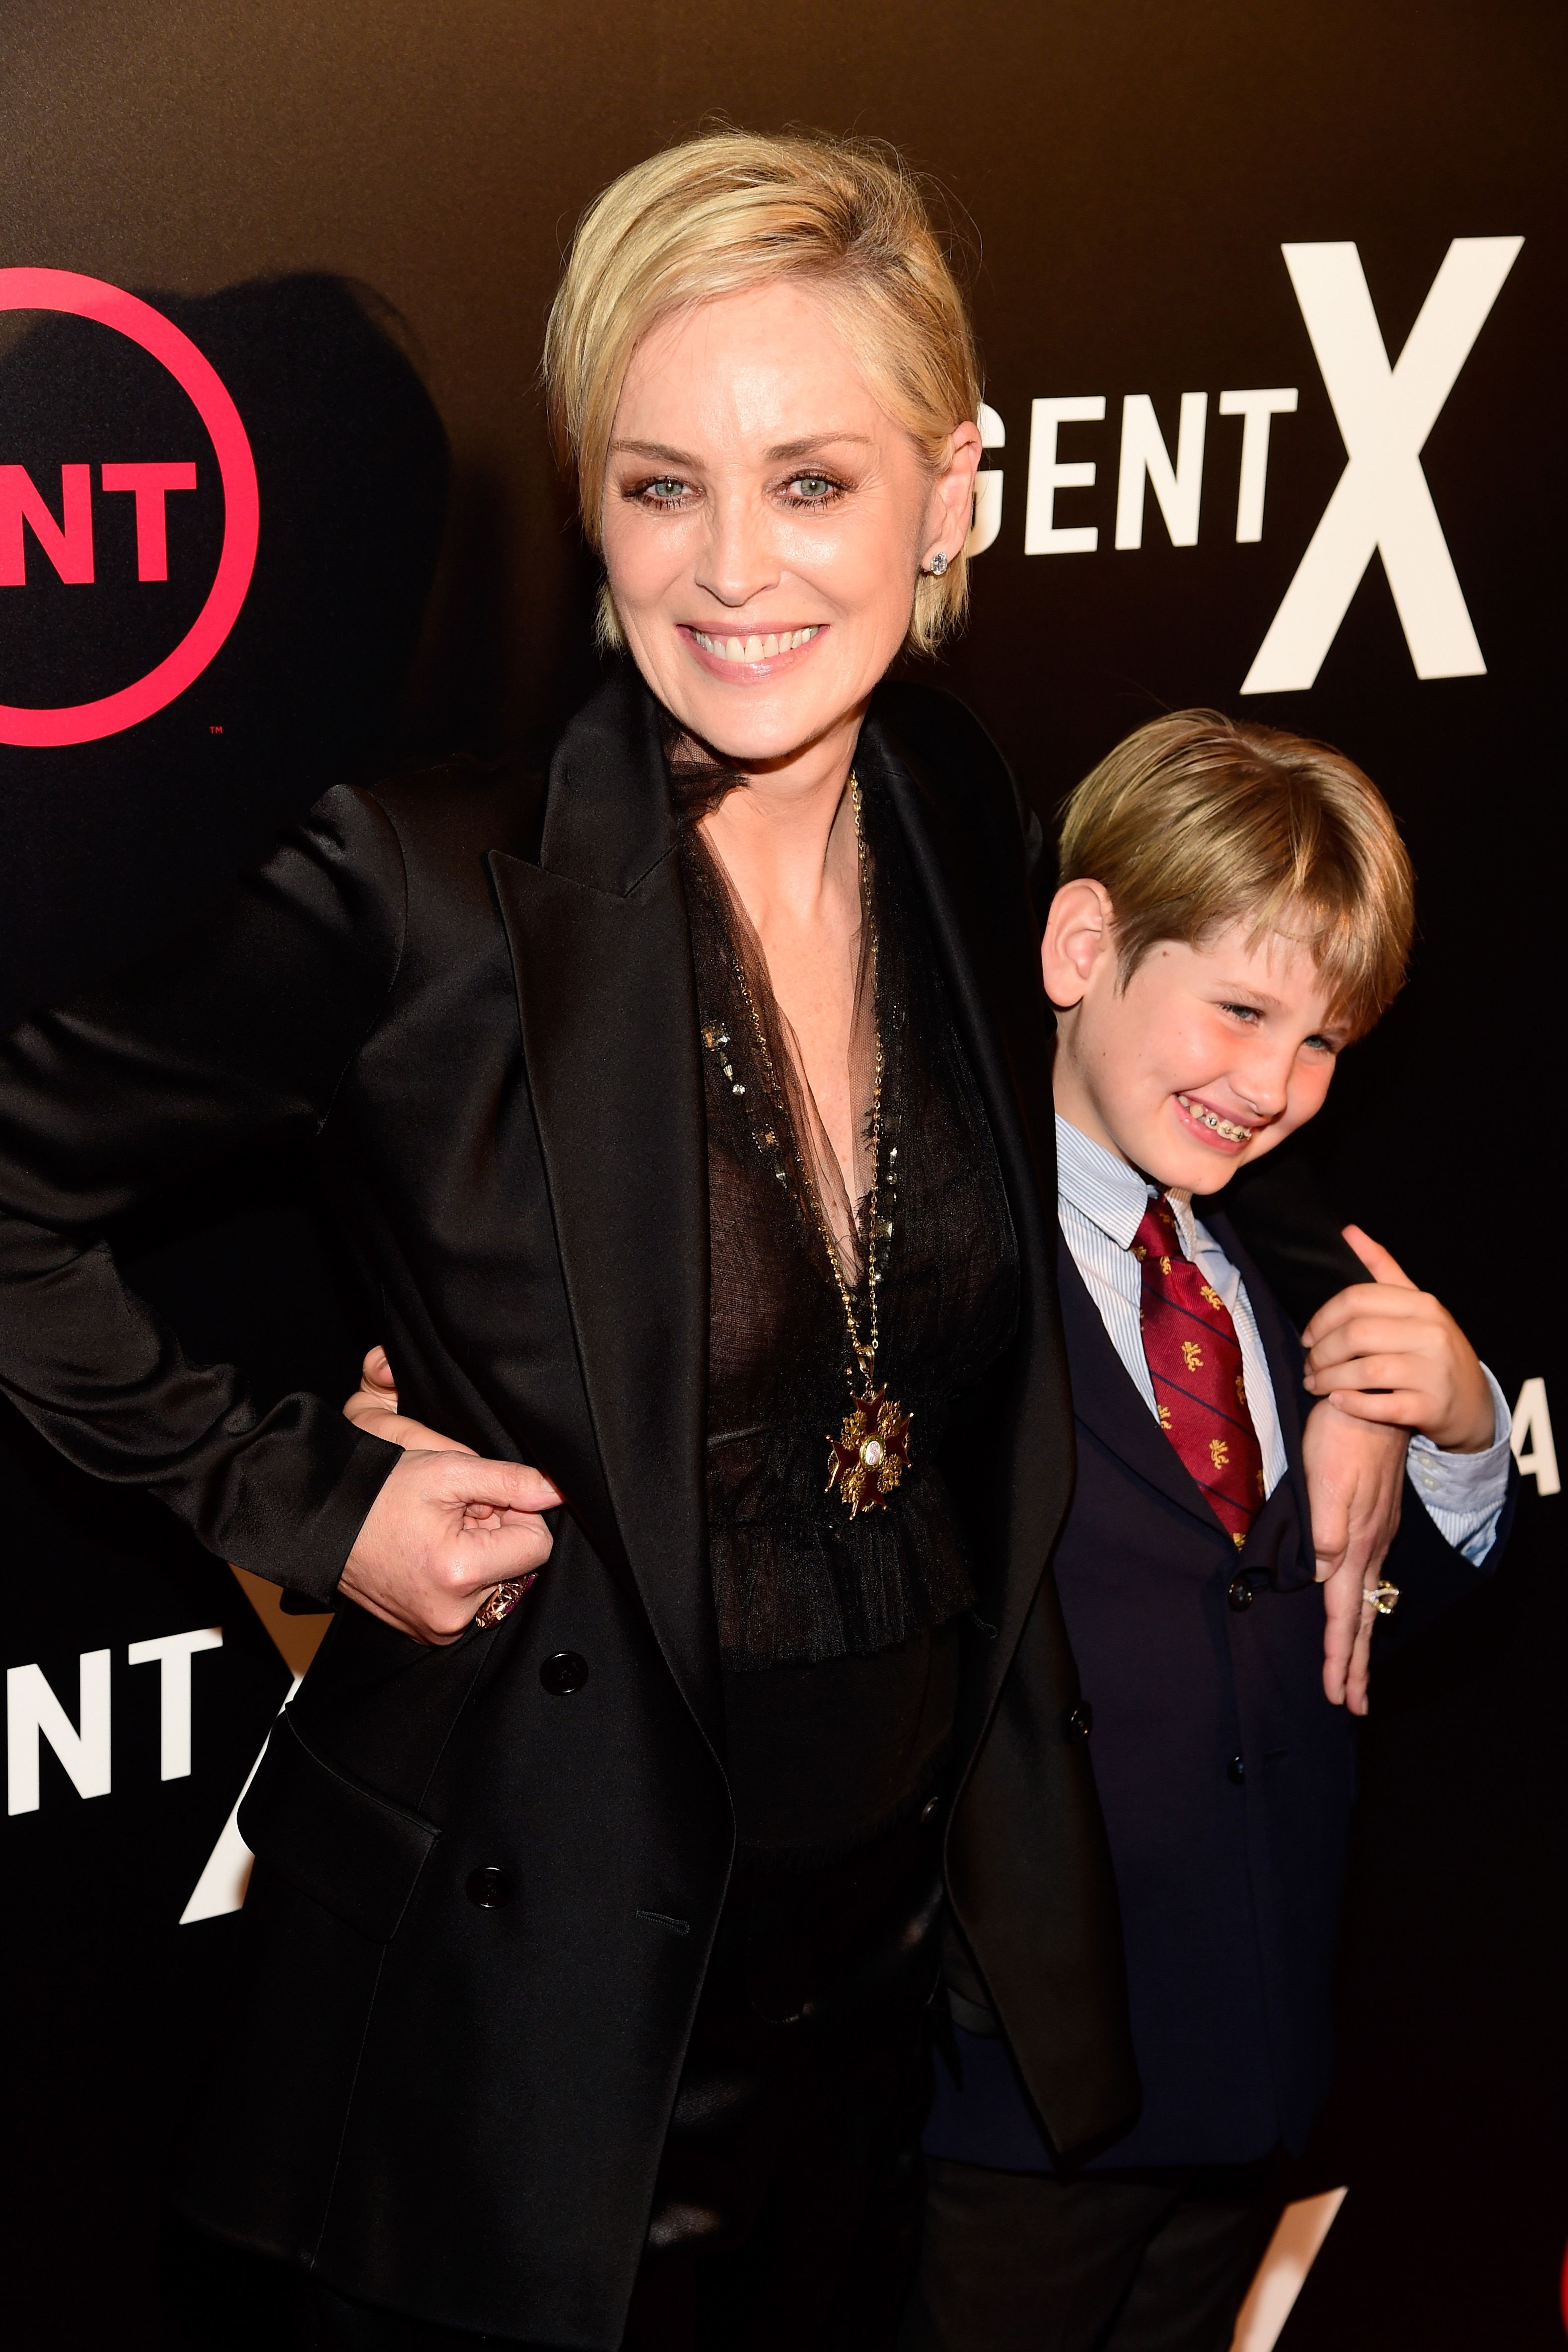 """WEST HOLLYWOOD, CA - OCTOBER 20: Actress Sharon Stone (L) and Laird Vonne Stone attends TNT's """"Agent X"""" screening at The London West Hollywood on October 20, 2015 in West Hollywood, California. 25769_001   Frazer Harrison/Getty Images for TNT/AFP"""